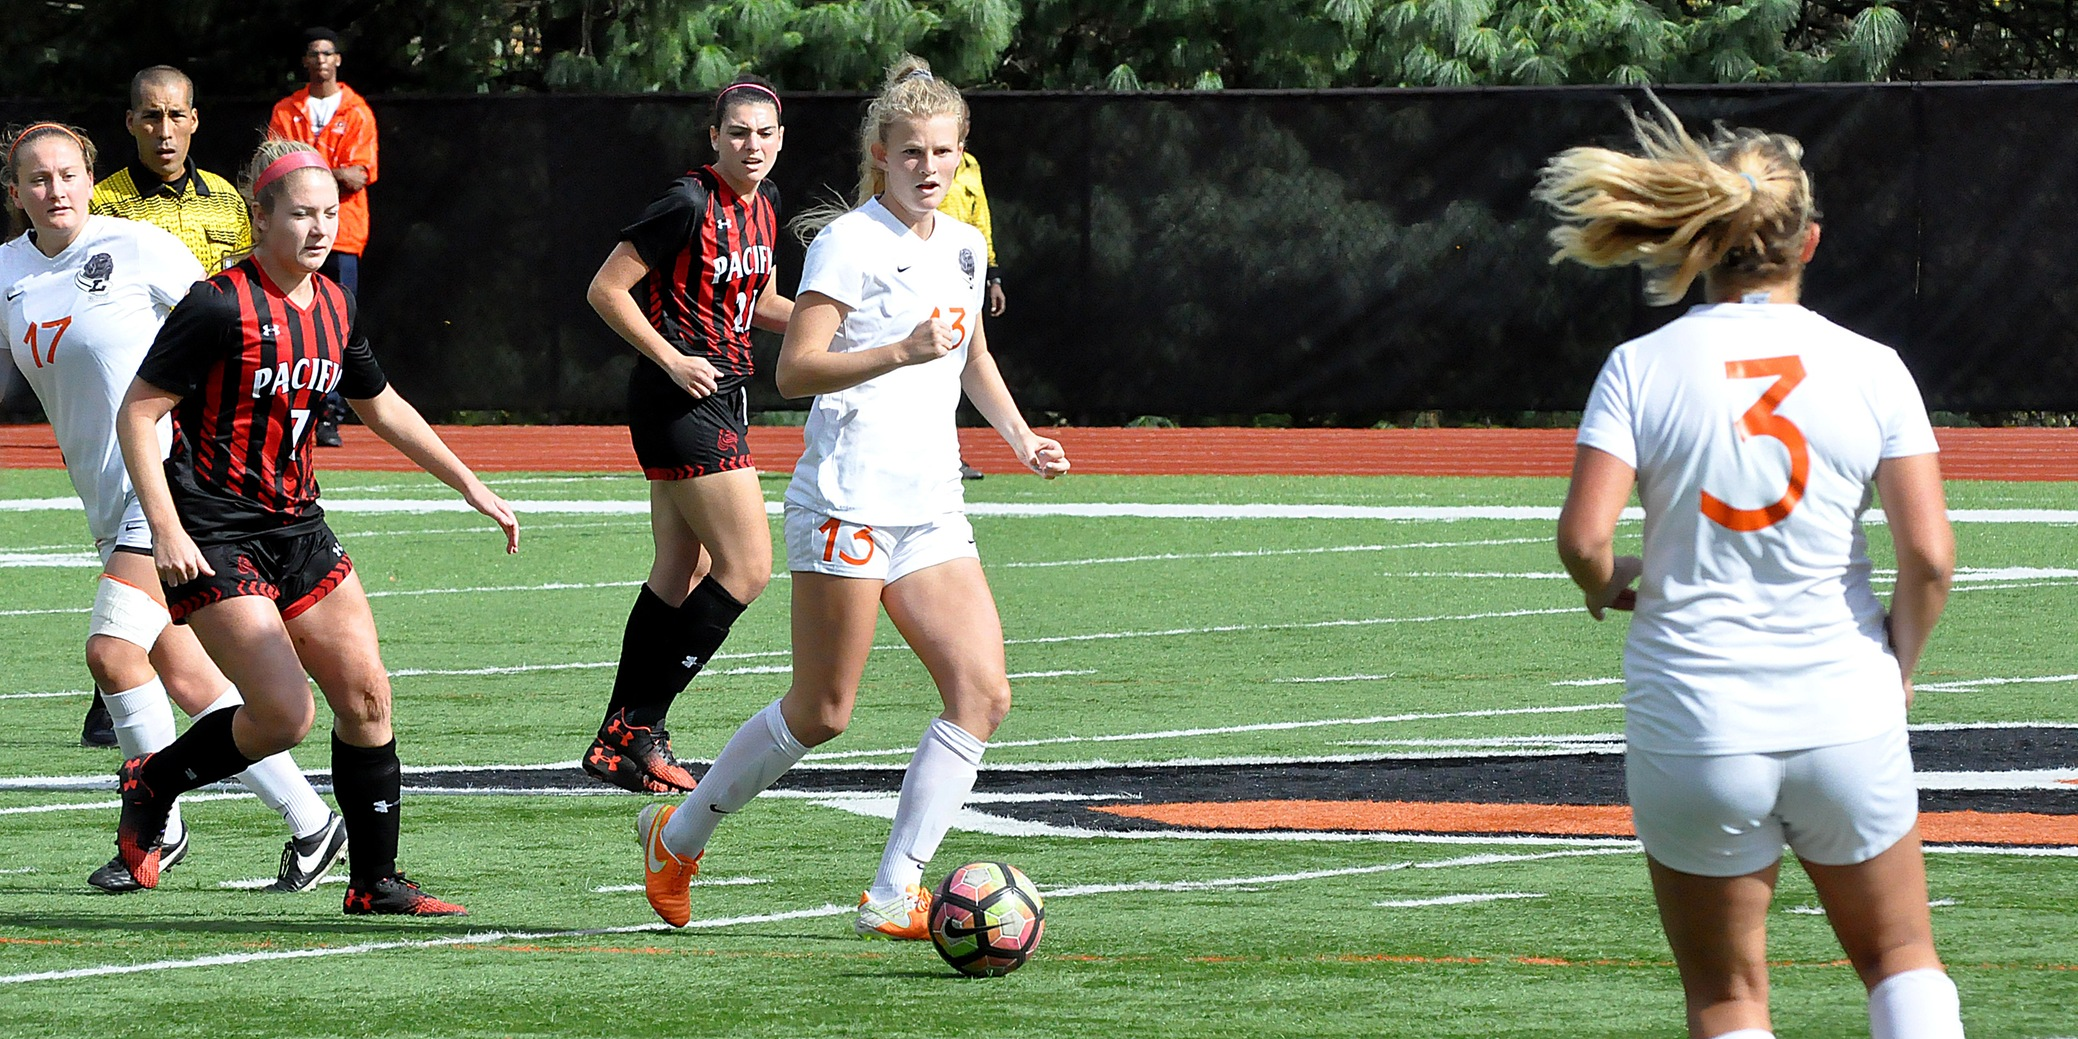 Late goals help Pios end winless skid